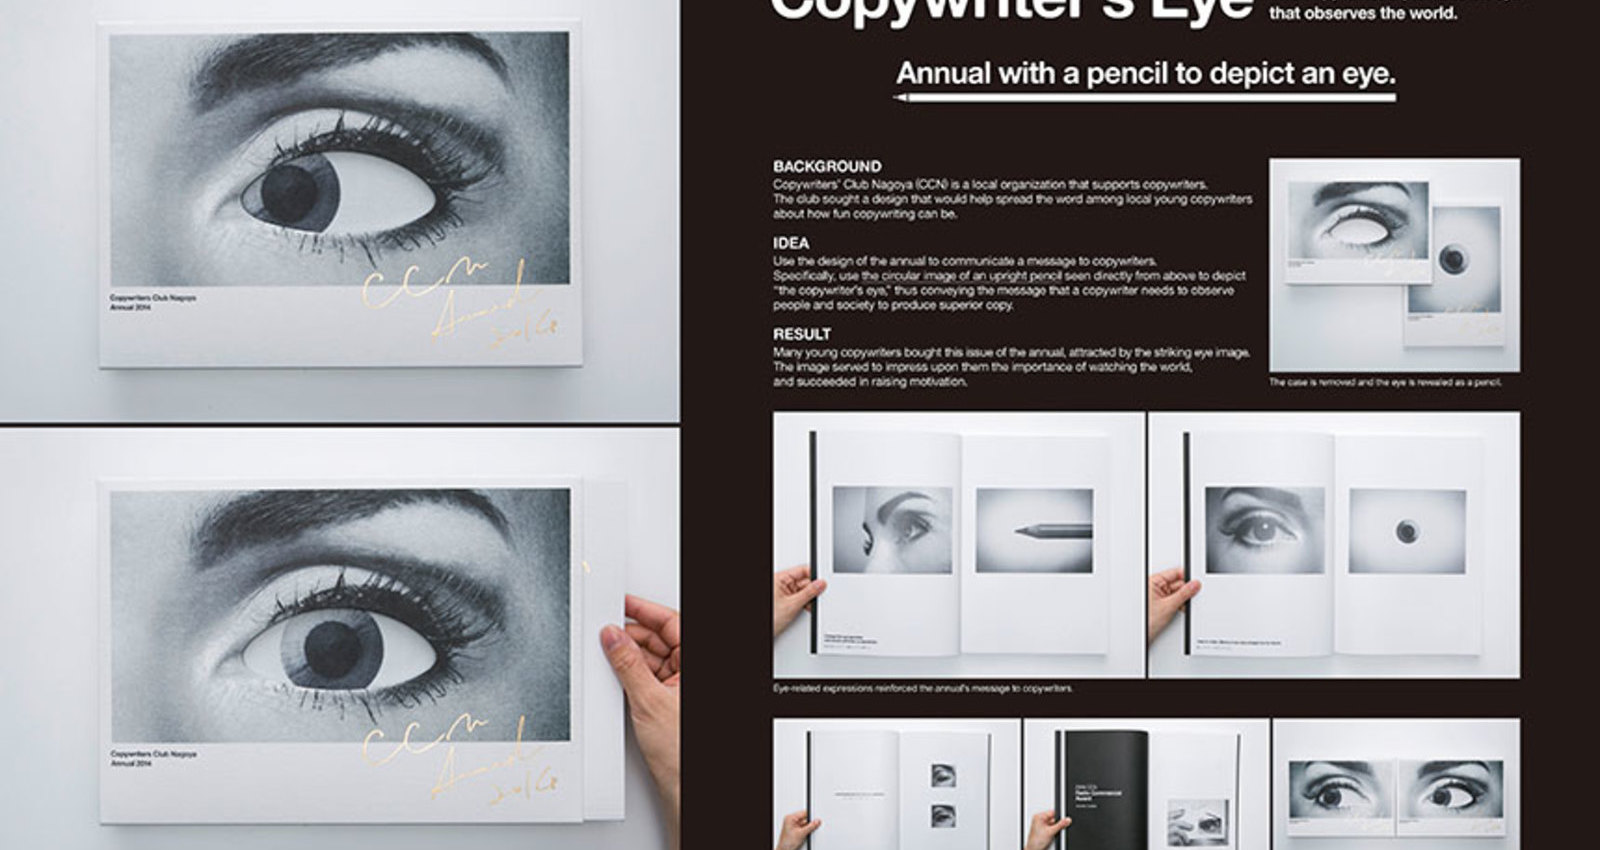 COPYWRITER'S EYE